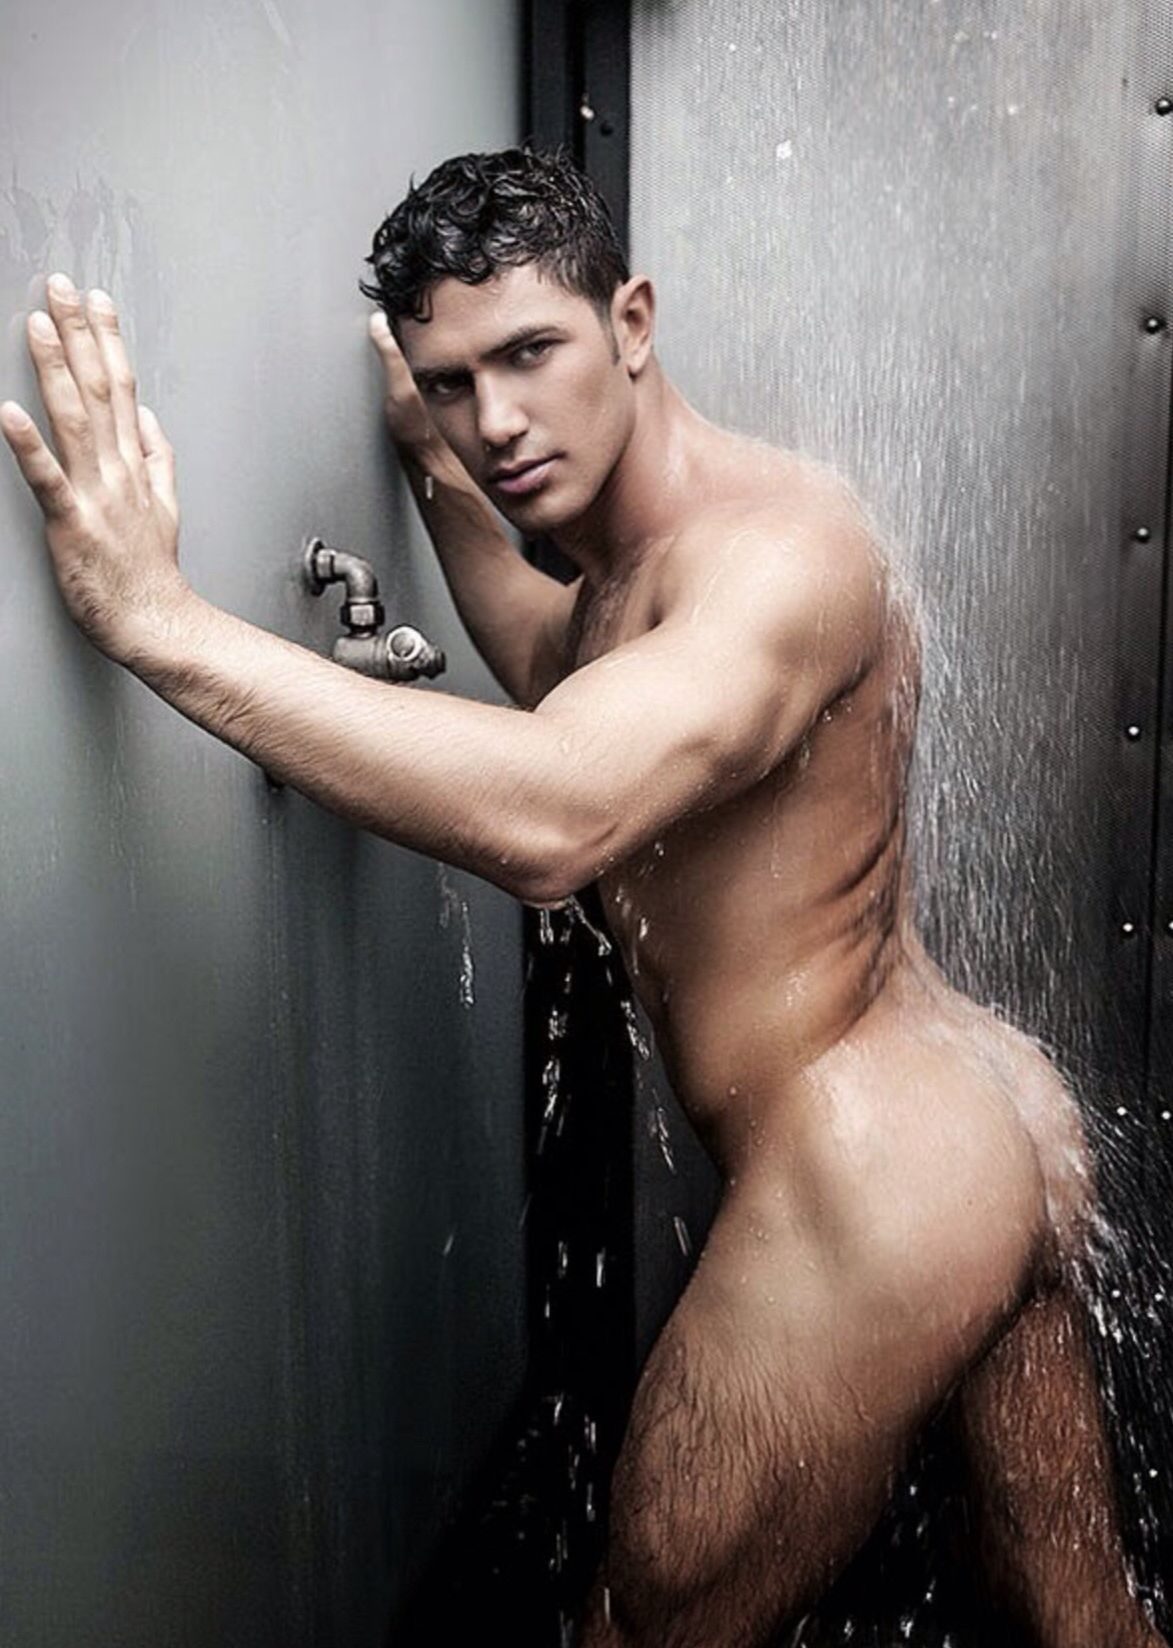 gay-hunks-in-the-shower-veatnam